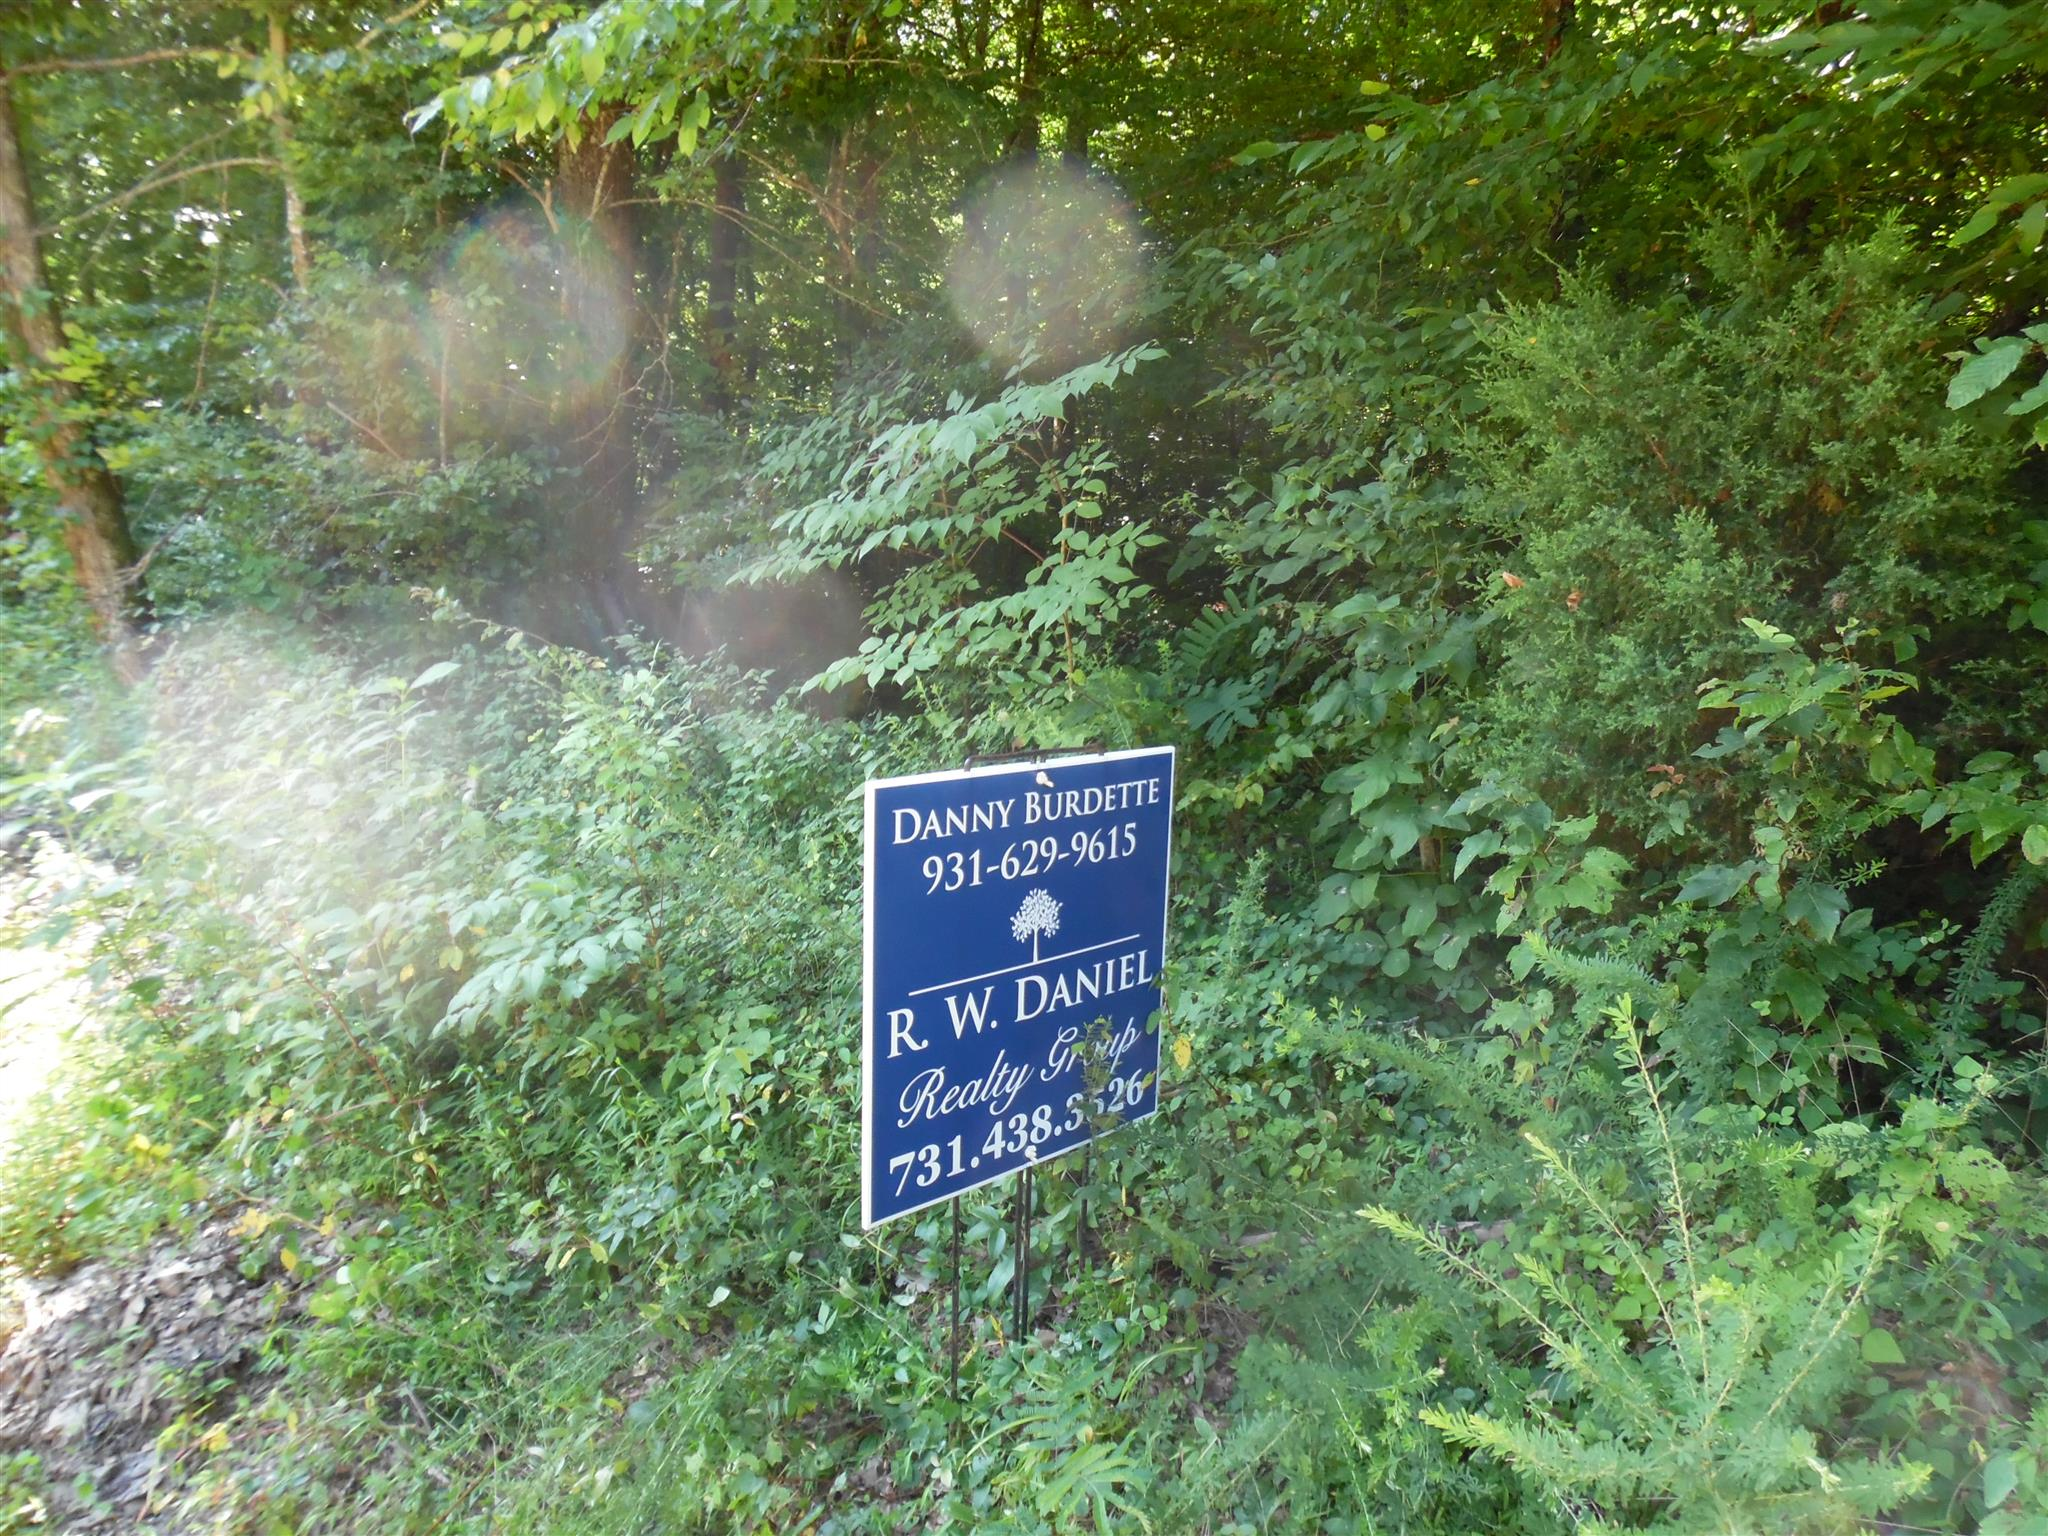 0 WATER FALL CREEK RD, Collinwood, TN 38450 - Collinwood, TN real estate listing